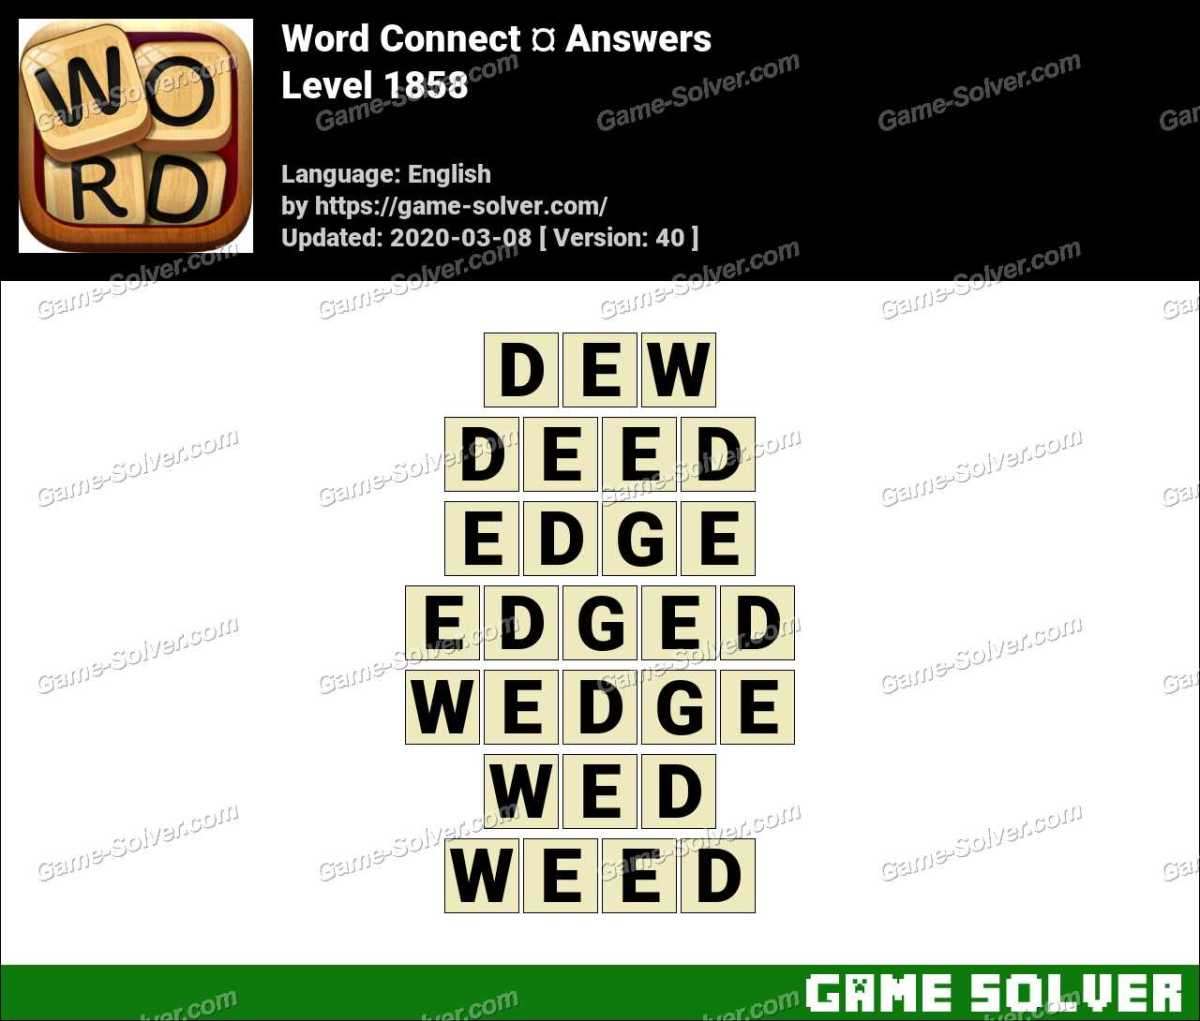 Word Connect Level 1858 Answers